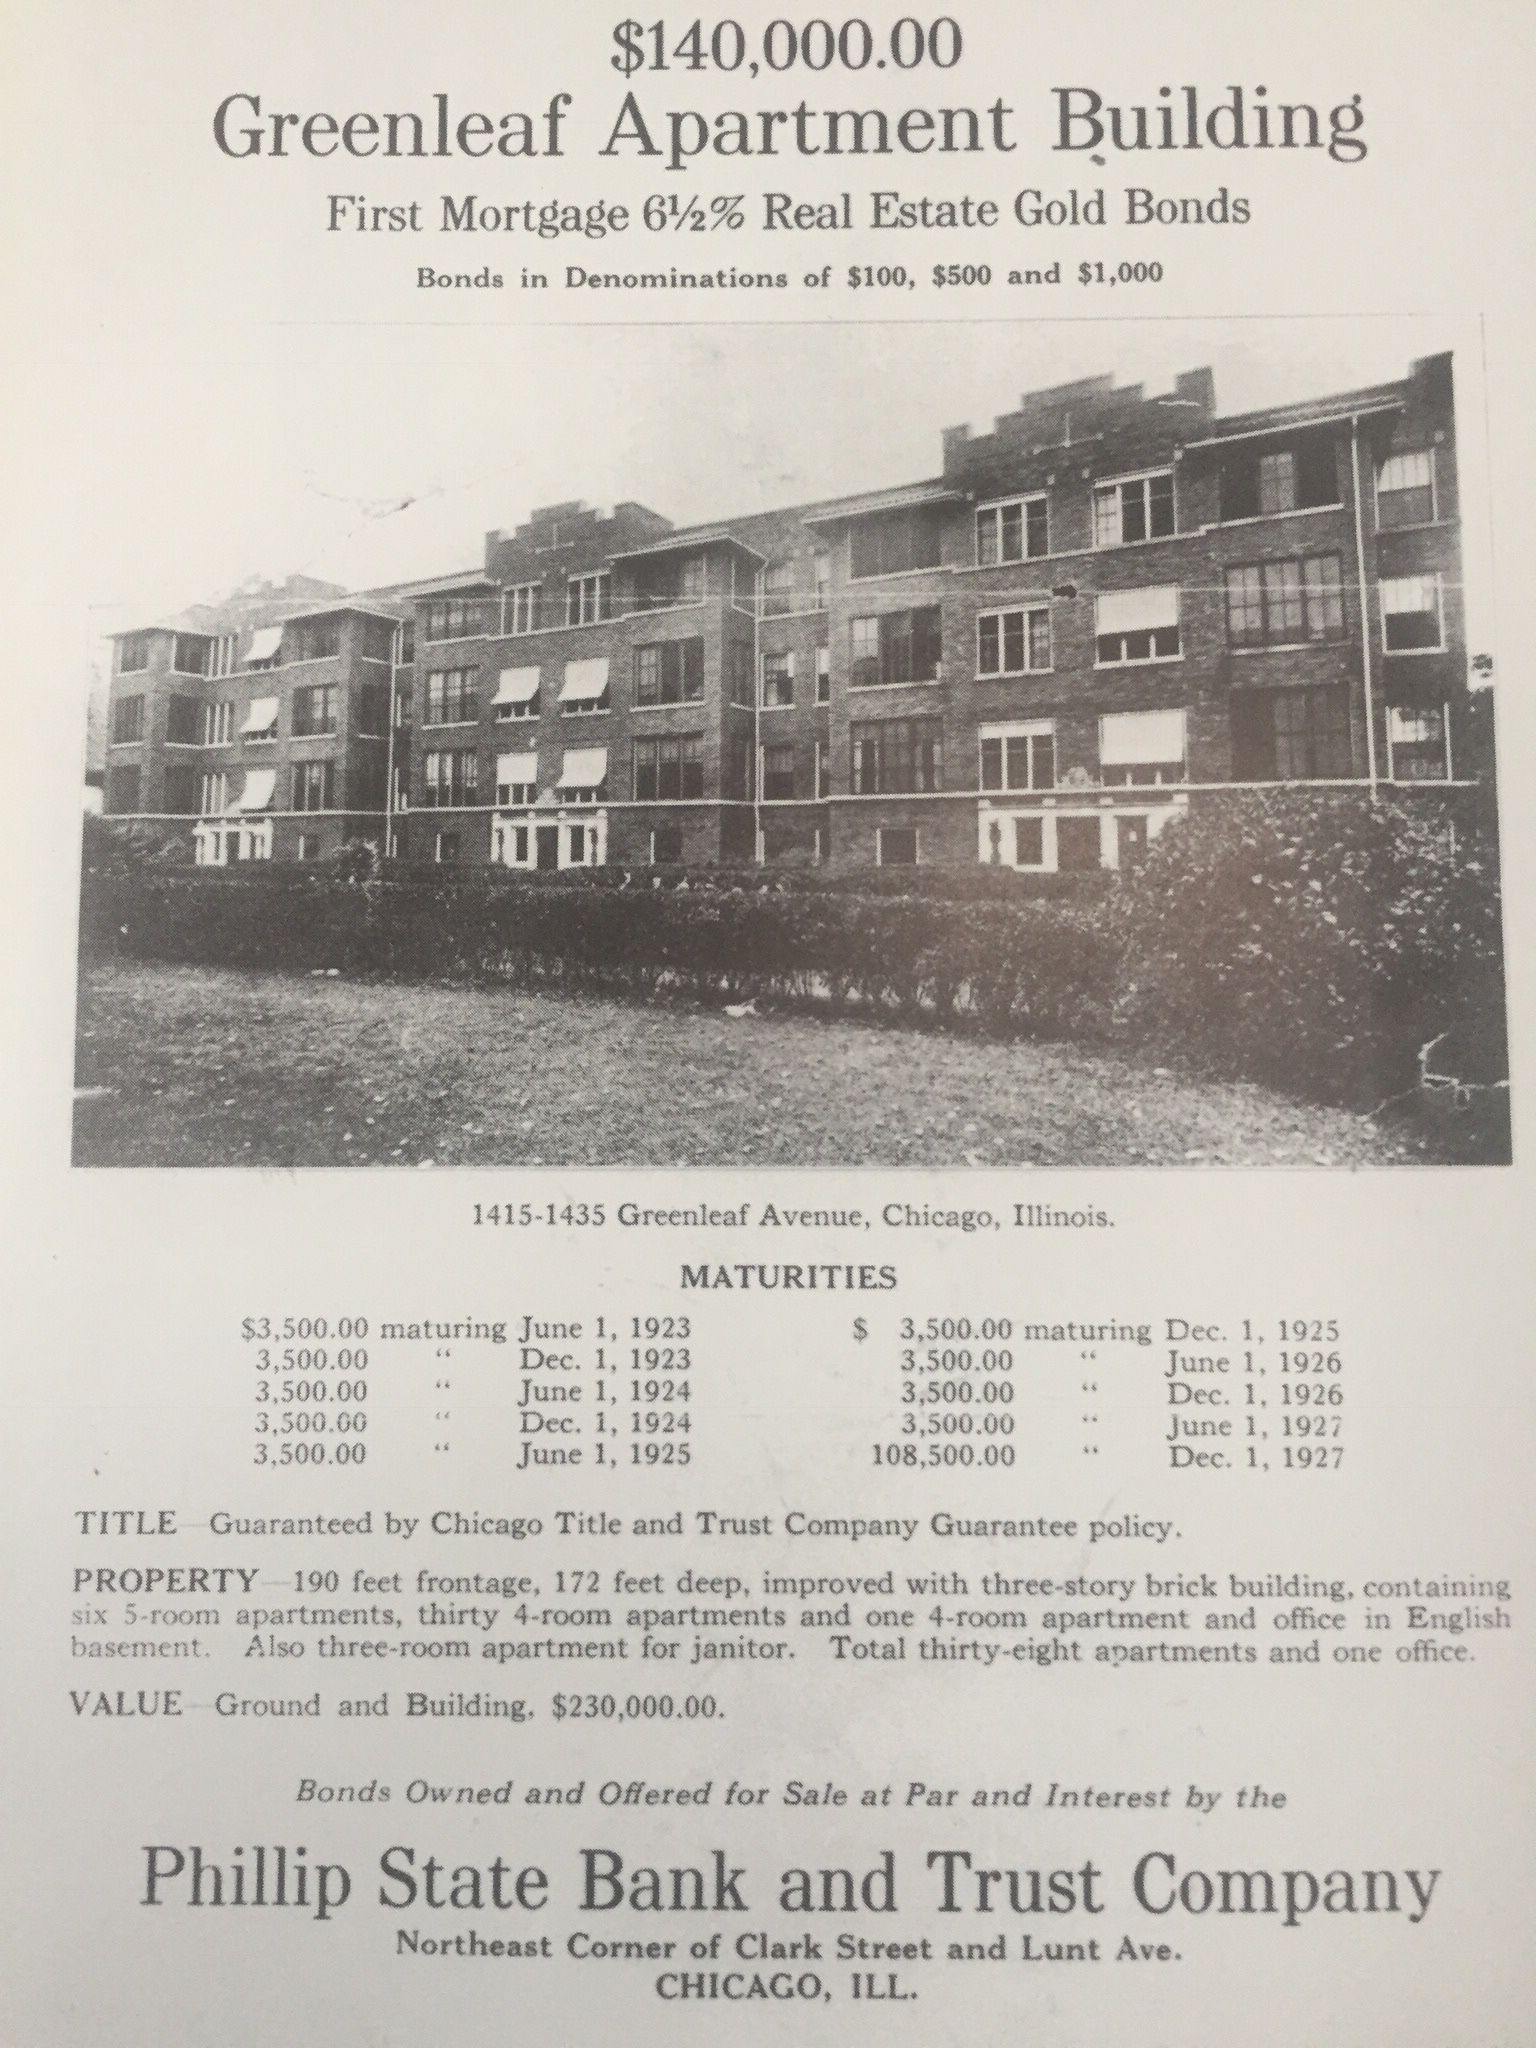 Apartment Building Financing For The Greenleaf Apartments This Was One Of The Methods Of Financing L Chicago Neighborhoods Chicago History Rogers Park Chicago